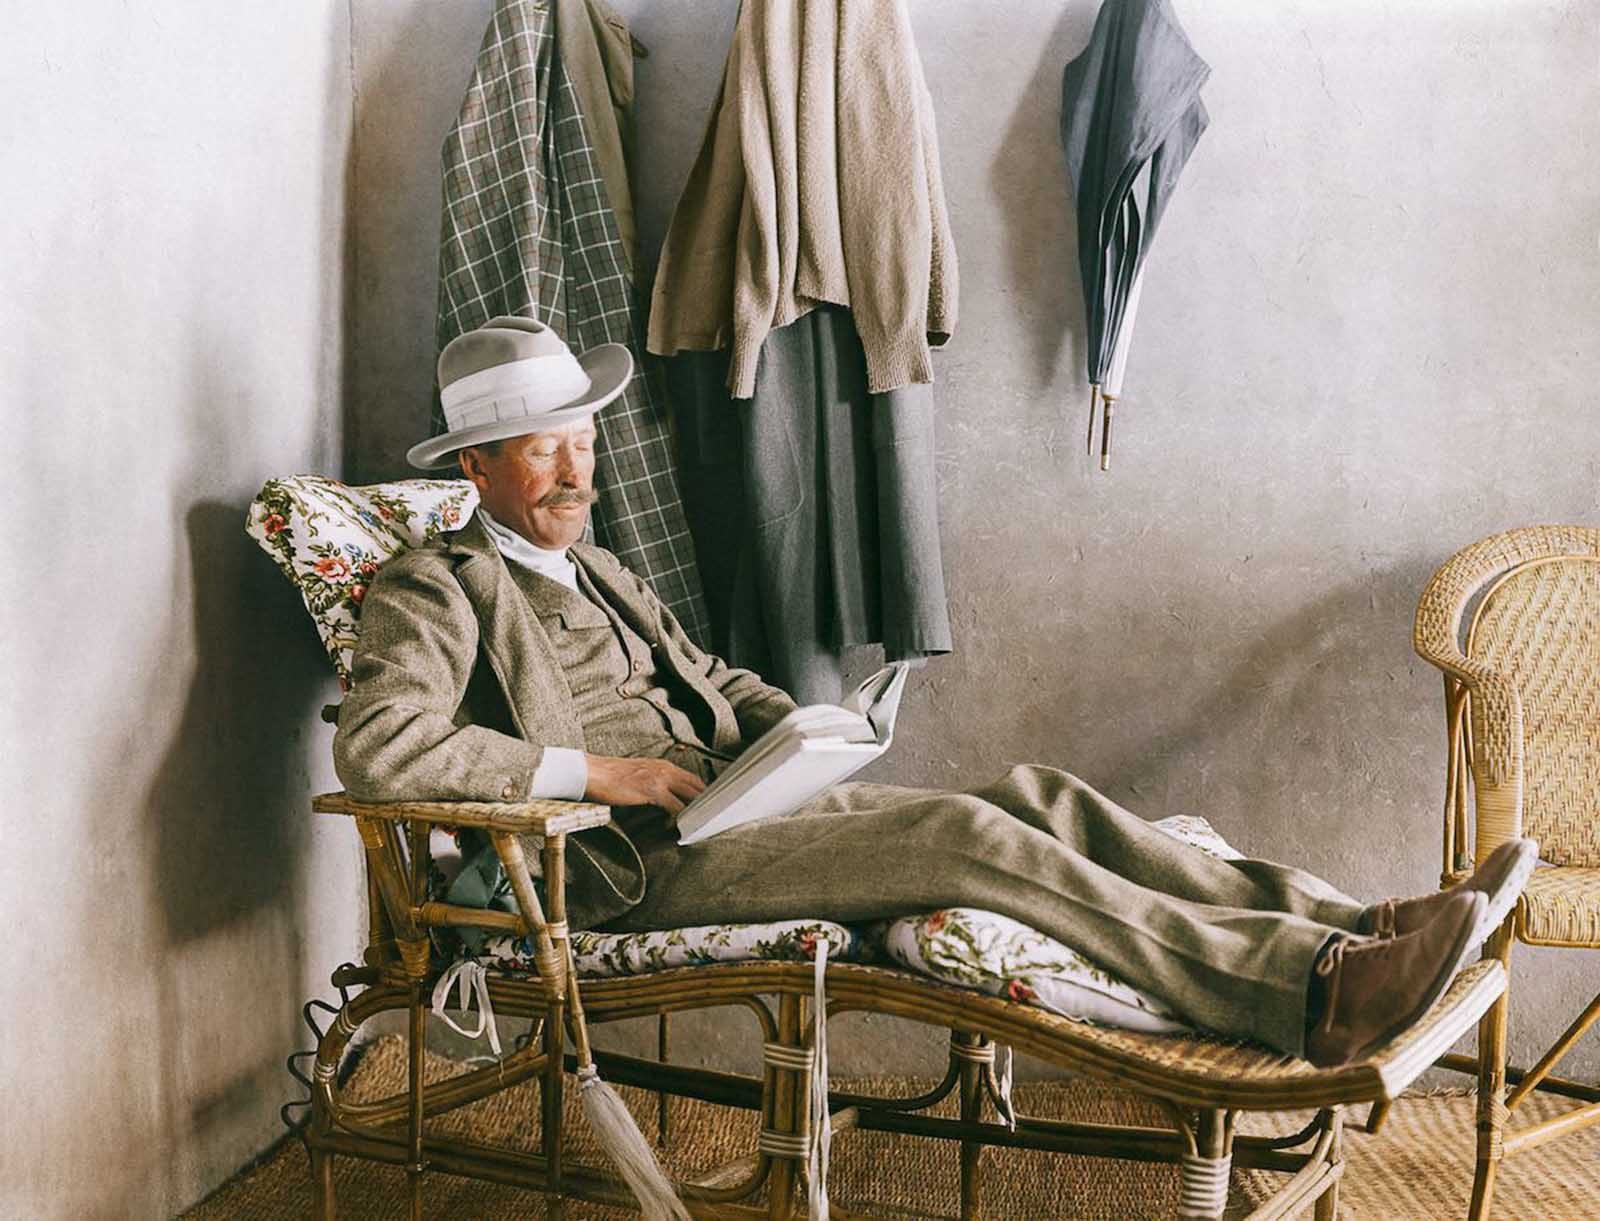 Lord Carnarvon, financier of the excavation, reads on the veranda of Carter's house near the Valley of the Kings.